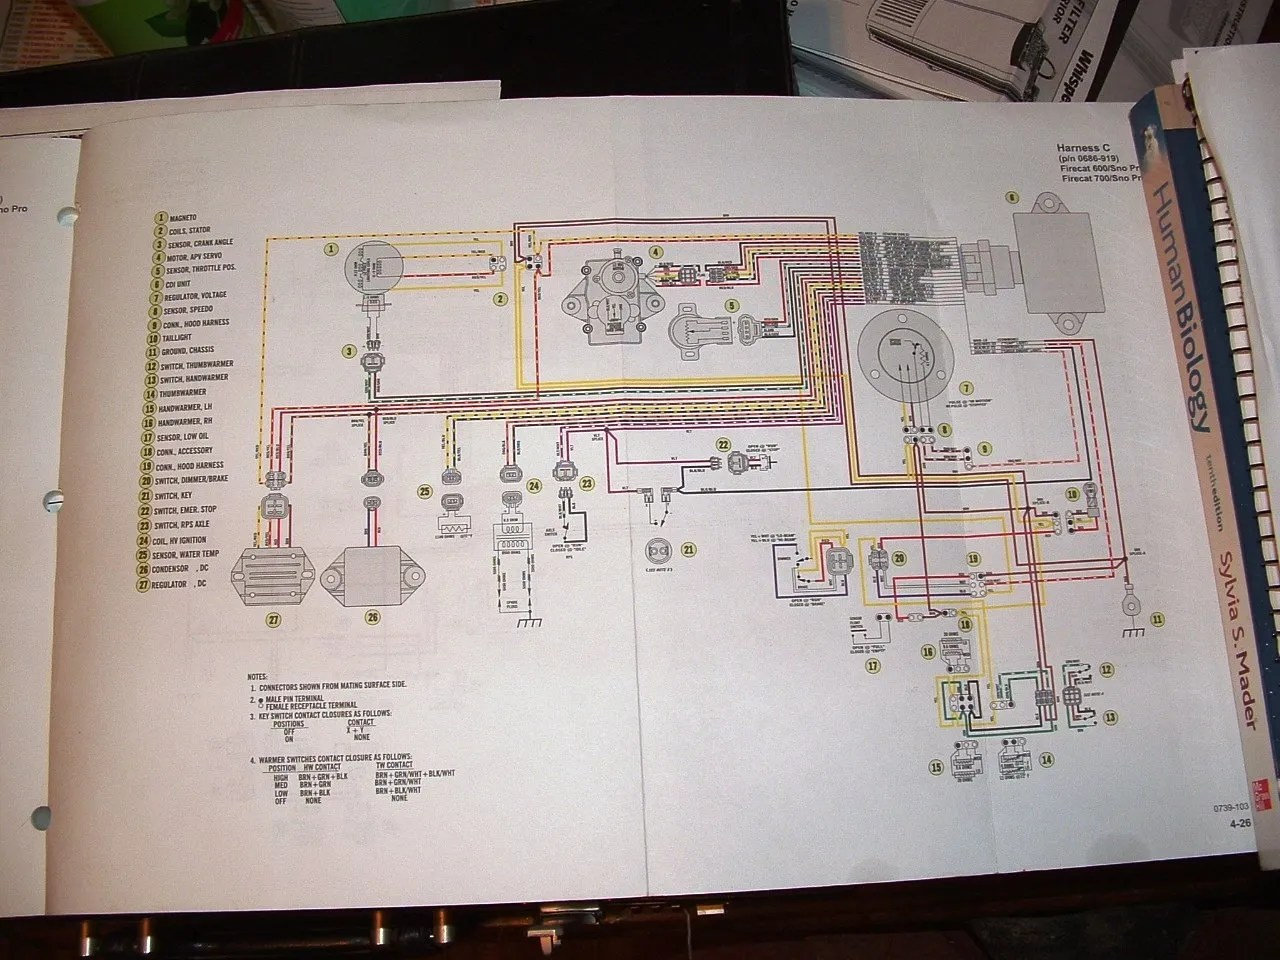 hight resolution of 03 f7 efi electrical problem urgent arcticchat com arctic cat forum rh arcticchat com 2004 arctic cat f7 wiring diagram 2004 arctic cat f7 wiring diagram